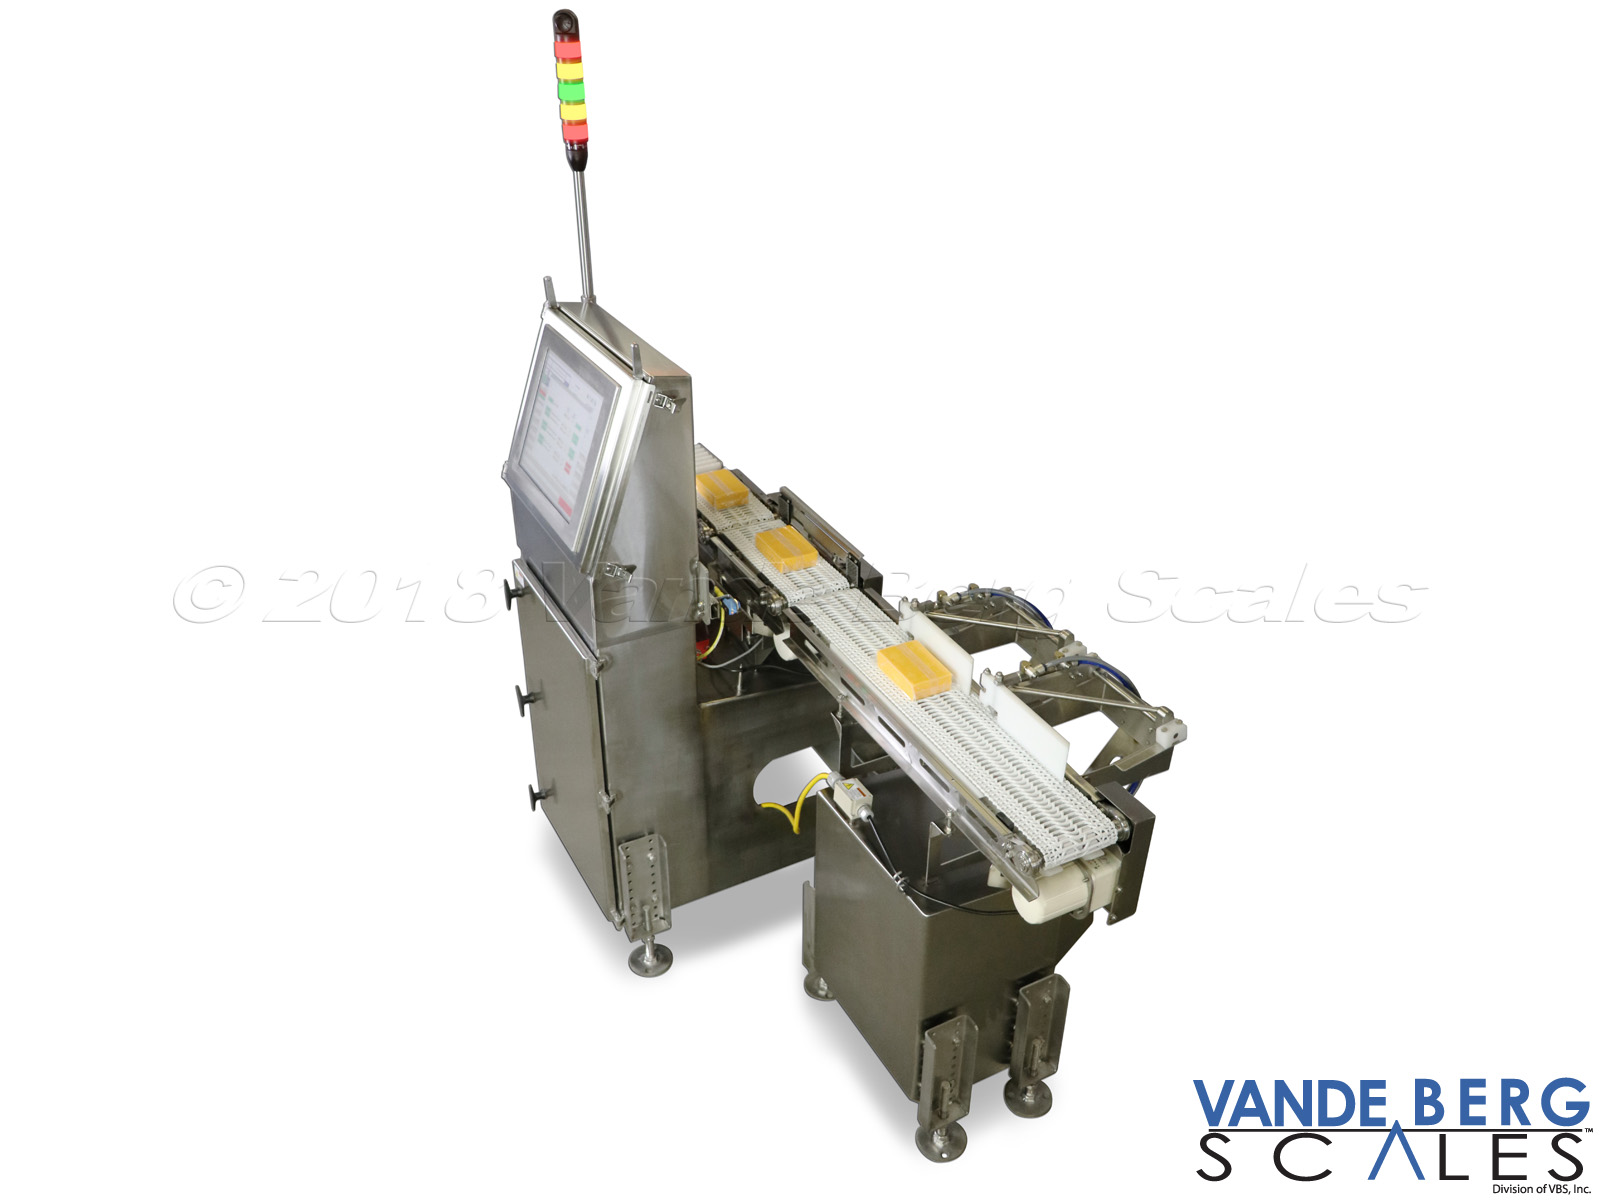 Cheese checkweigher with indicator lights and machine feedback for cutter adjustment.